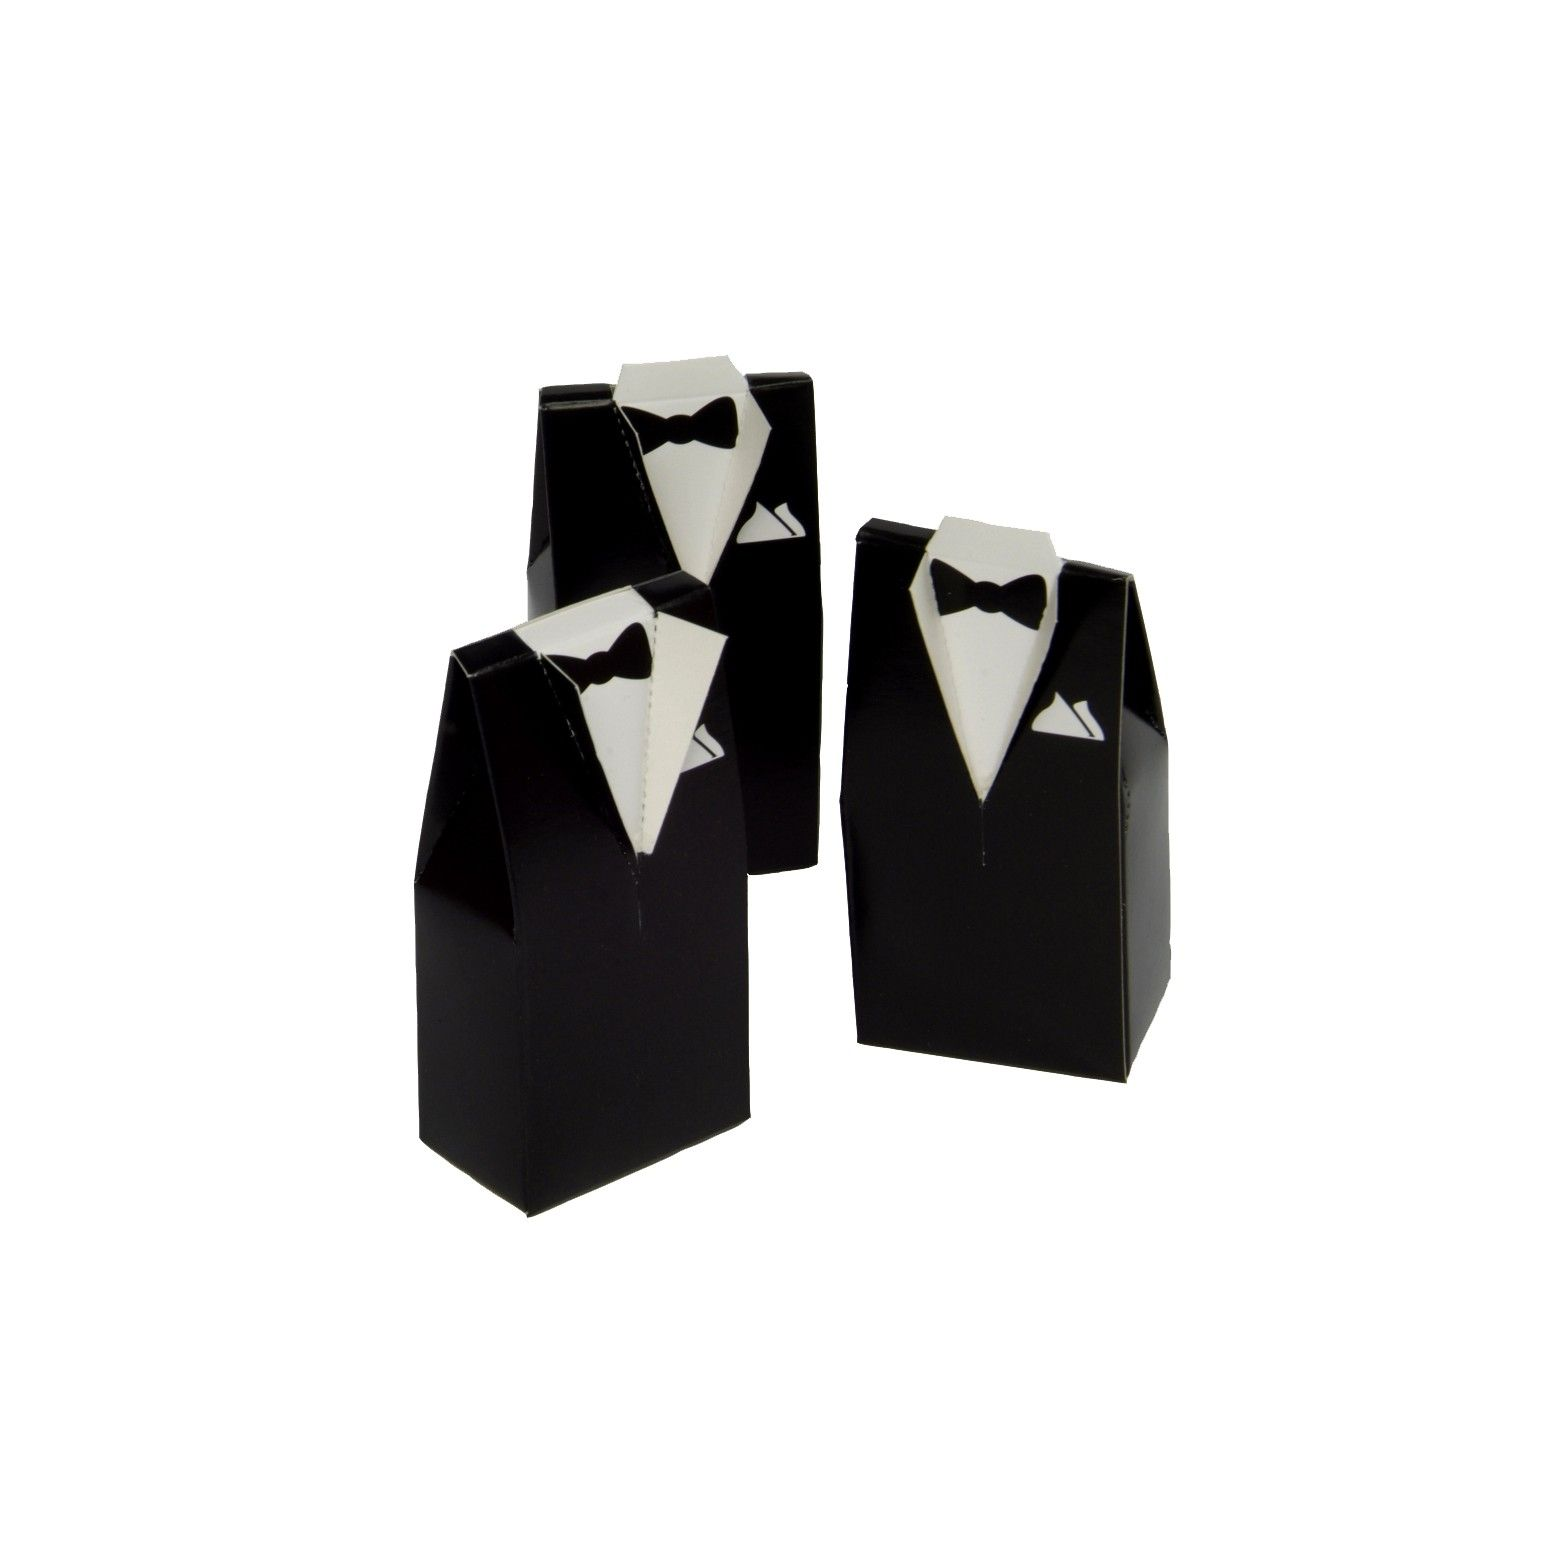 24ct Tuxedo Shaped Wedding Favor Boxes | Favors, Jordan almonds and ...